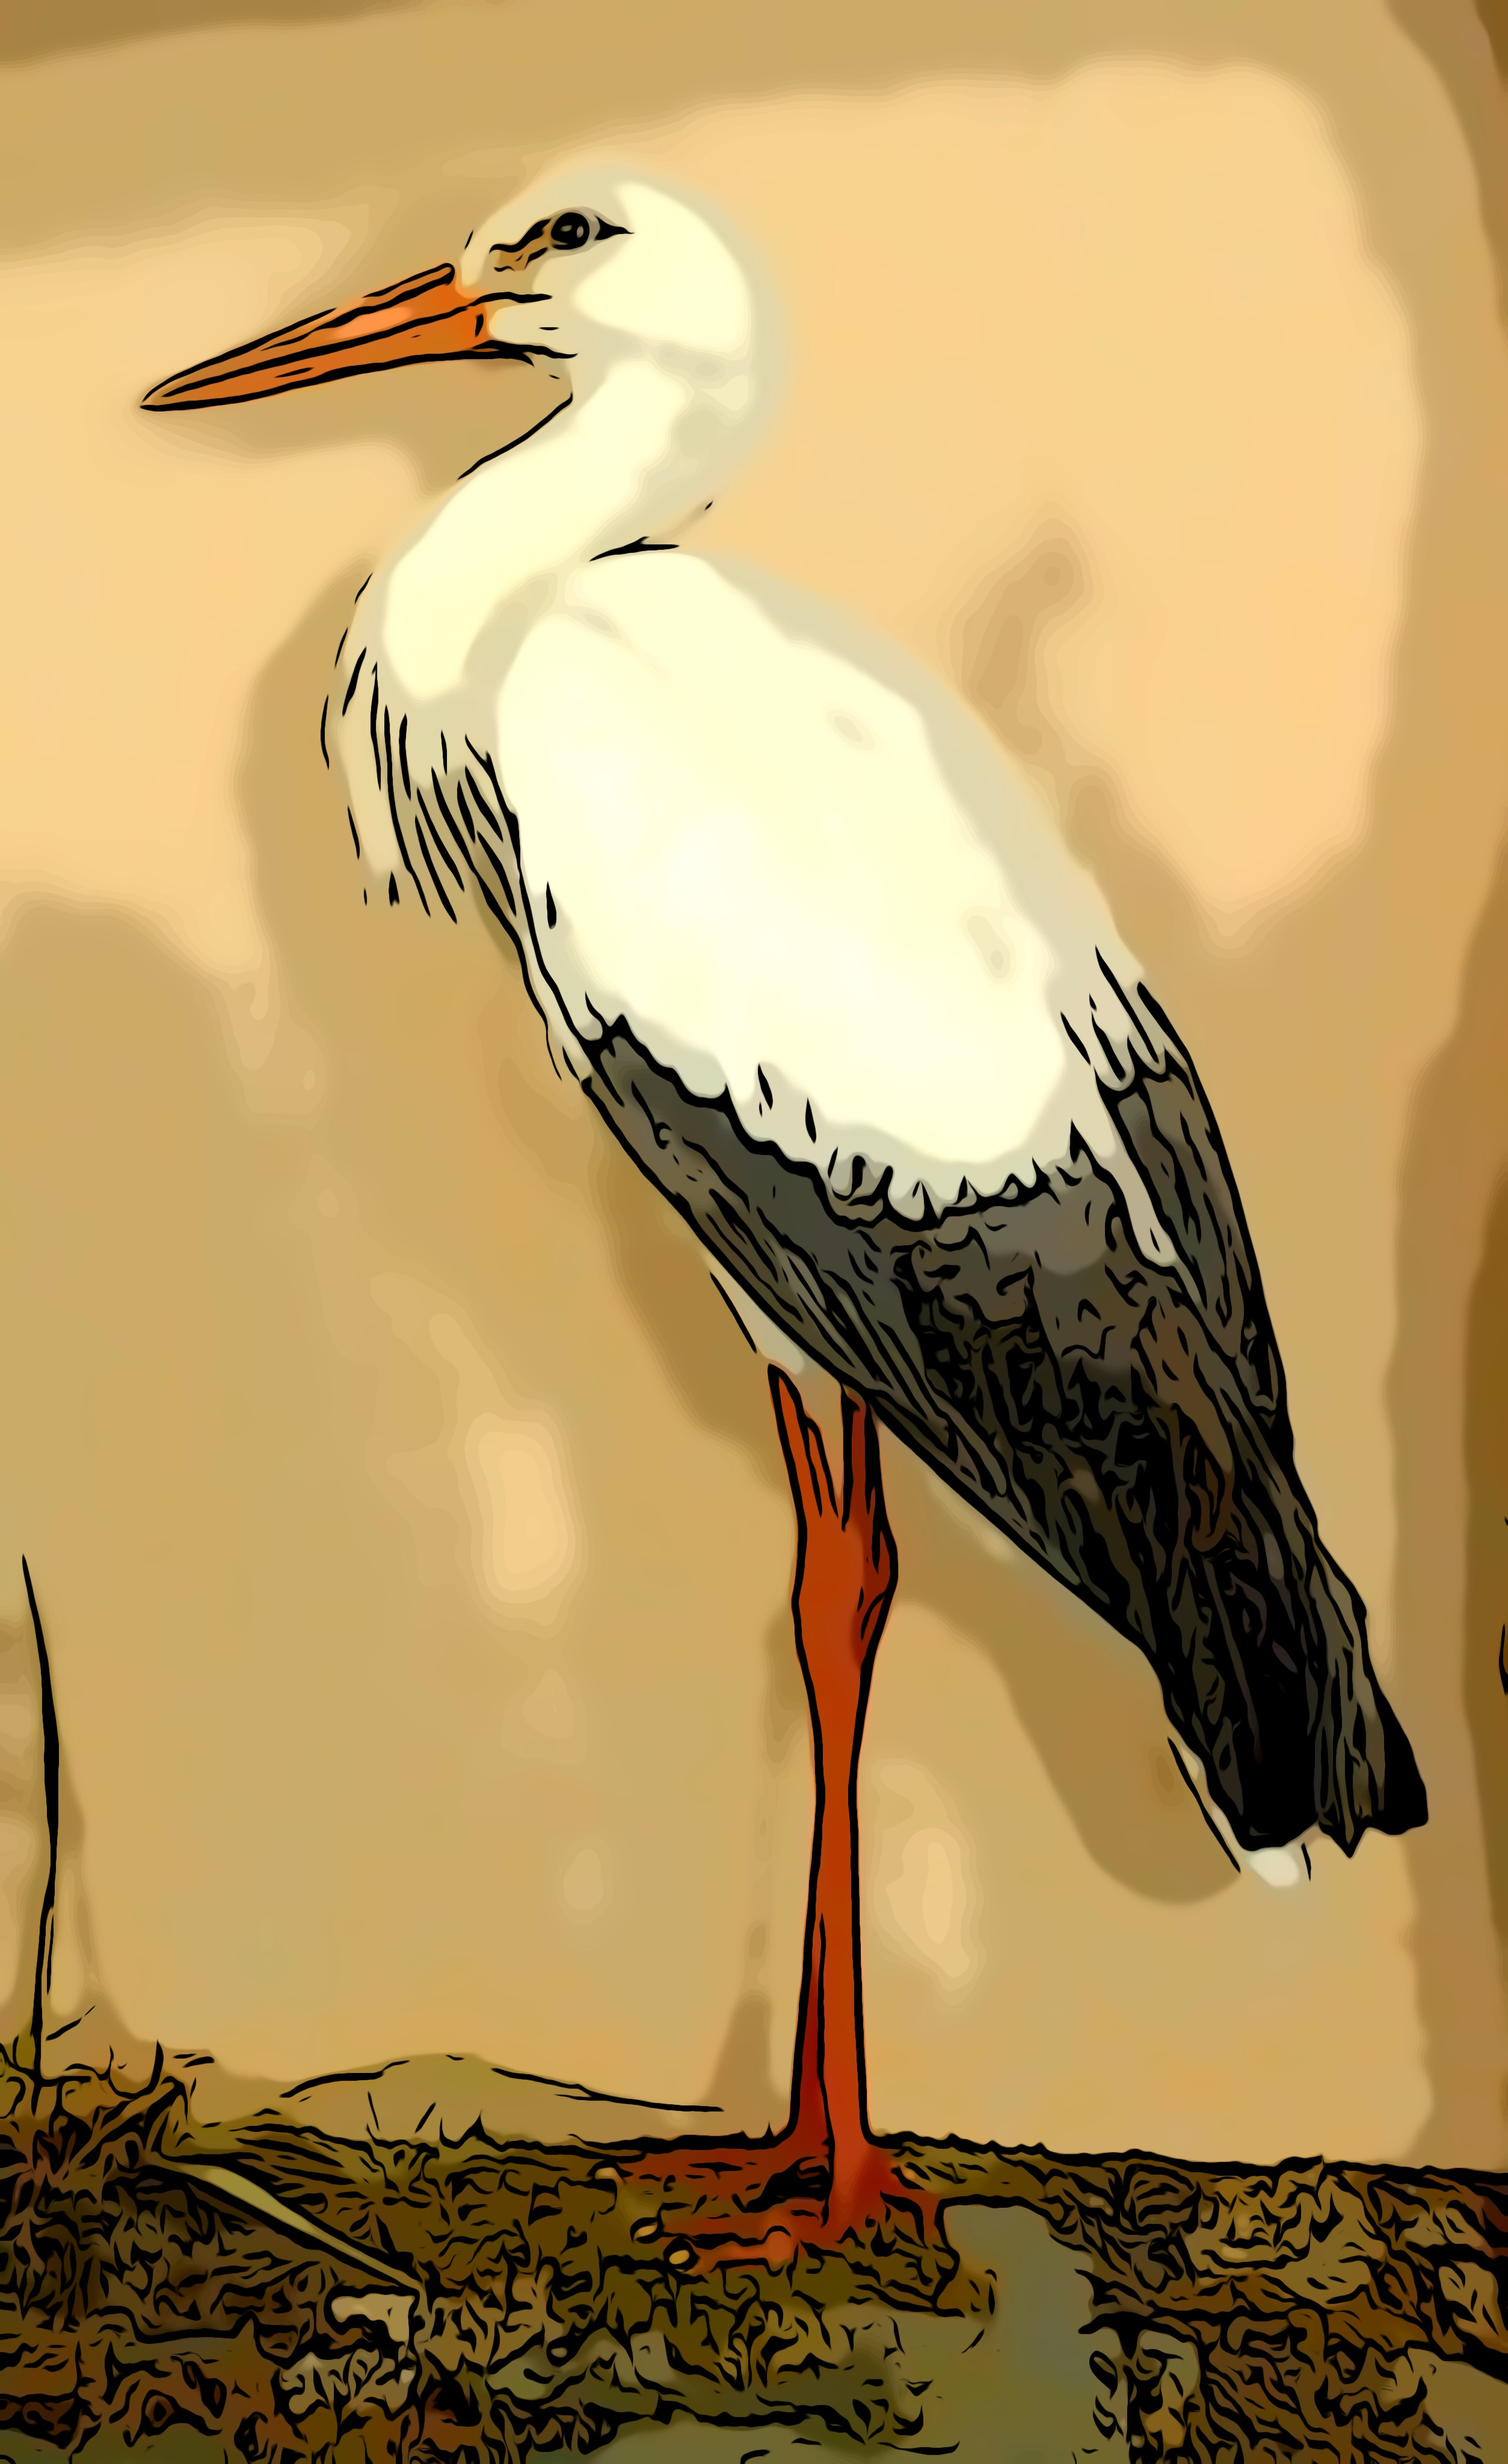 Image of a Stork from the Nelson collection